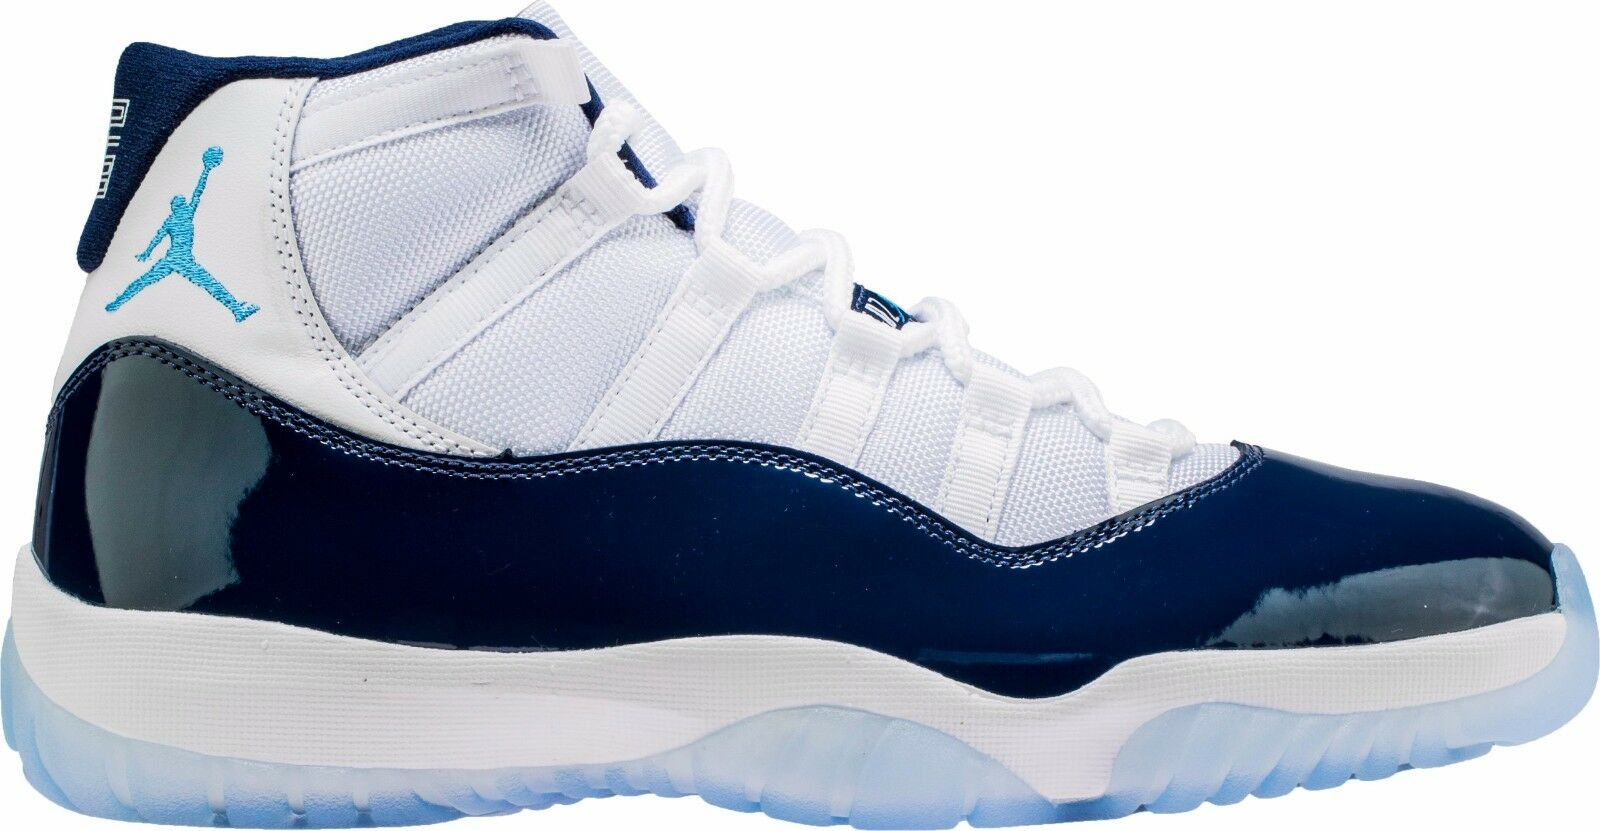 Air Jordan 11 Win Like 82 XI Retro UNC Midnight Navy Blue White 378037 123 Casual wild